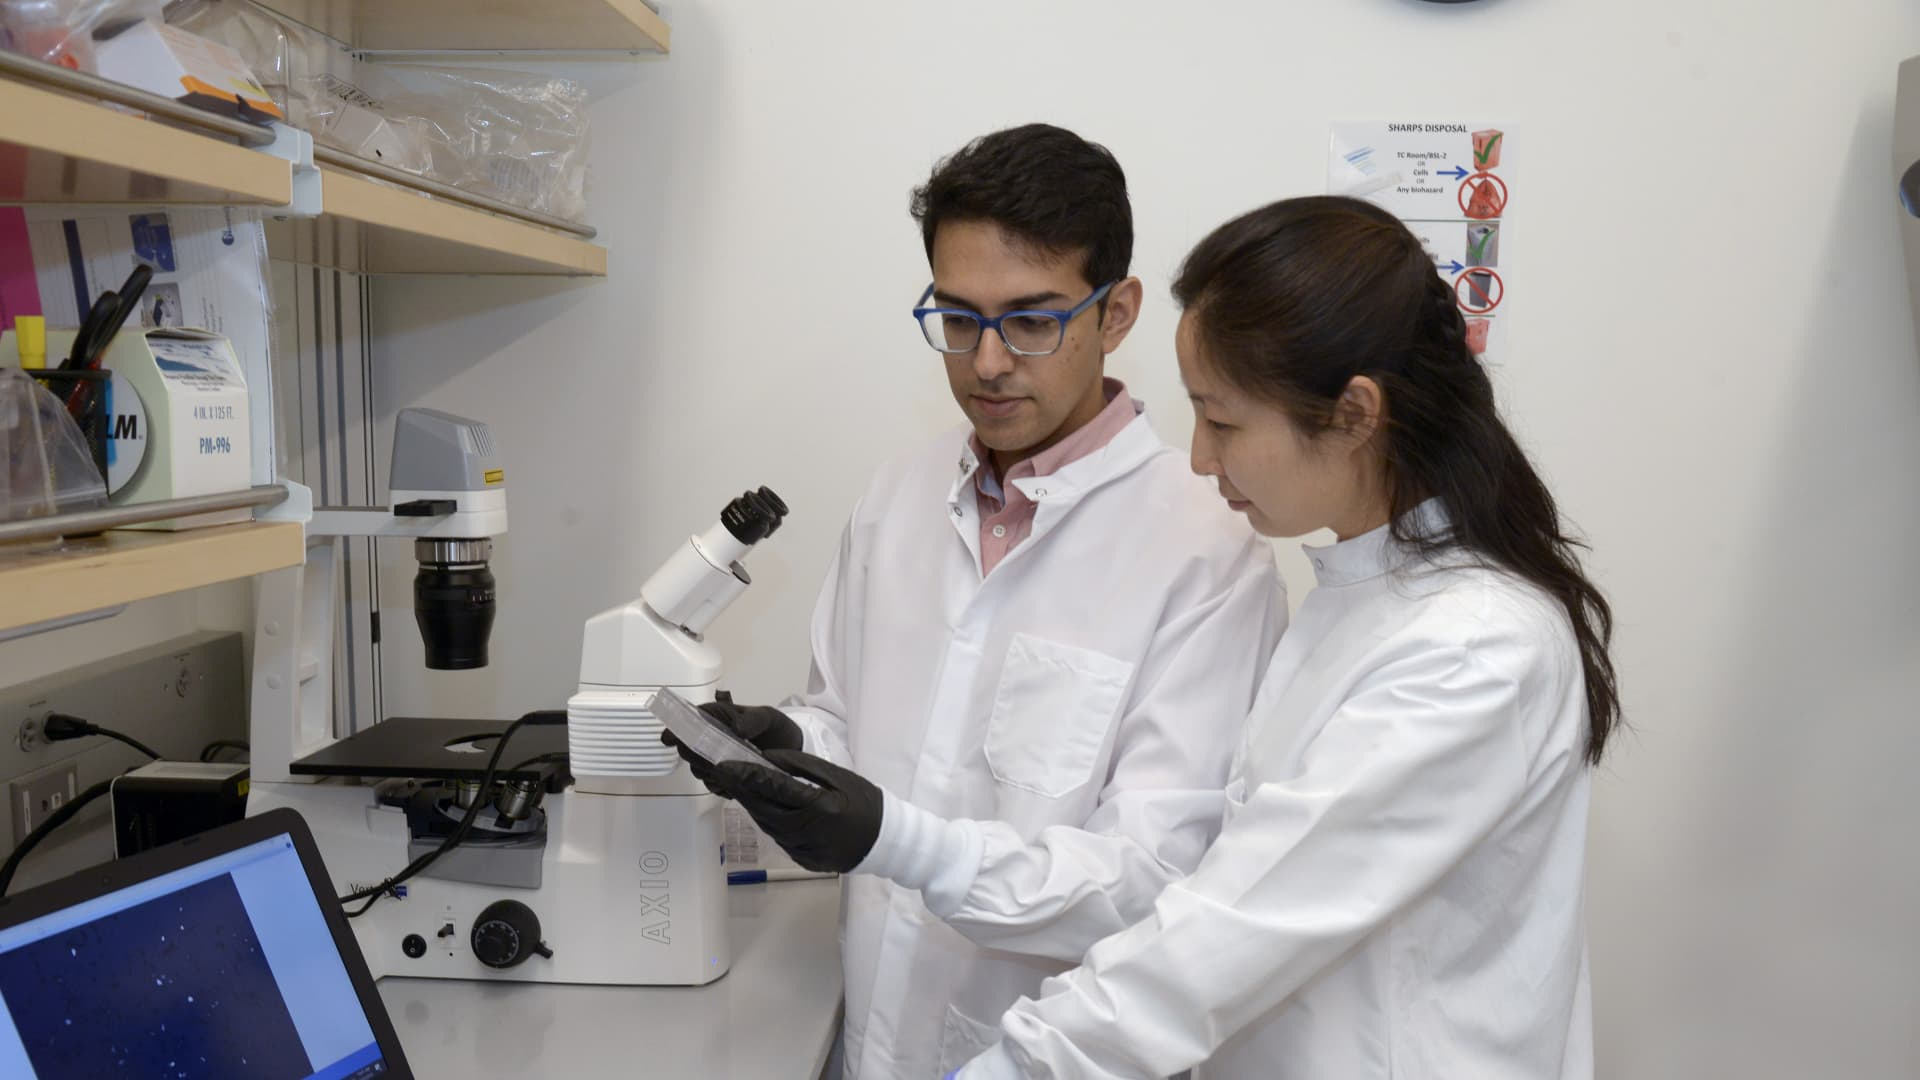 Dr. Neville Sanjana and his team at the New York Genome Center used CRISPR to identify the genes that can protect human cells against Covid-19.